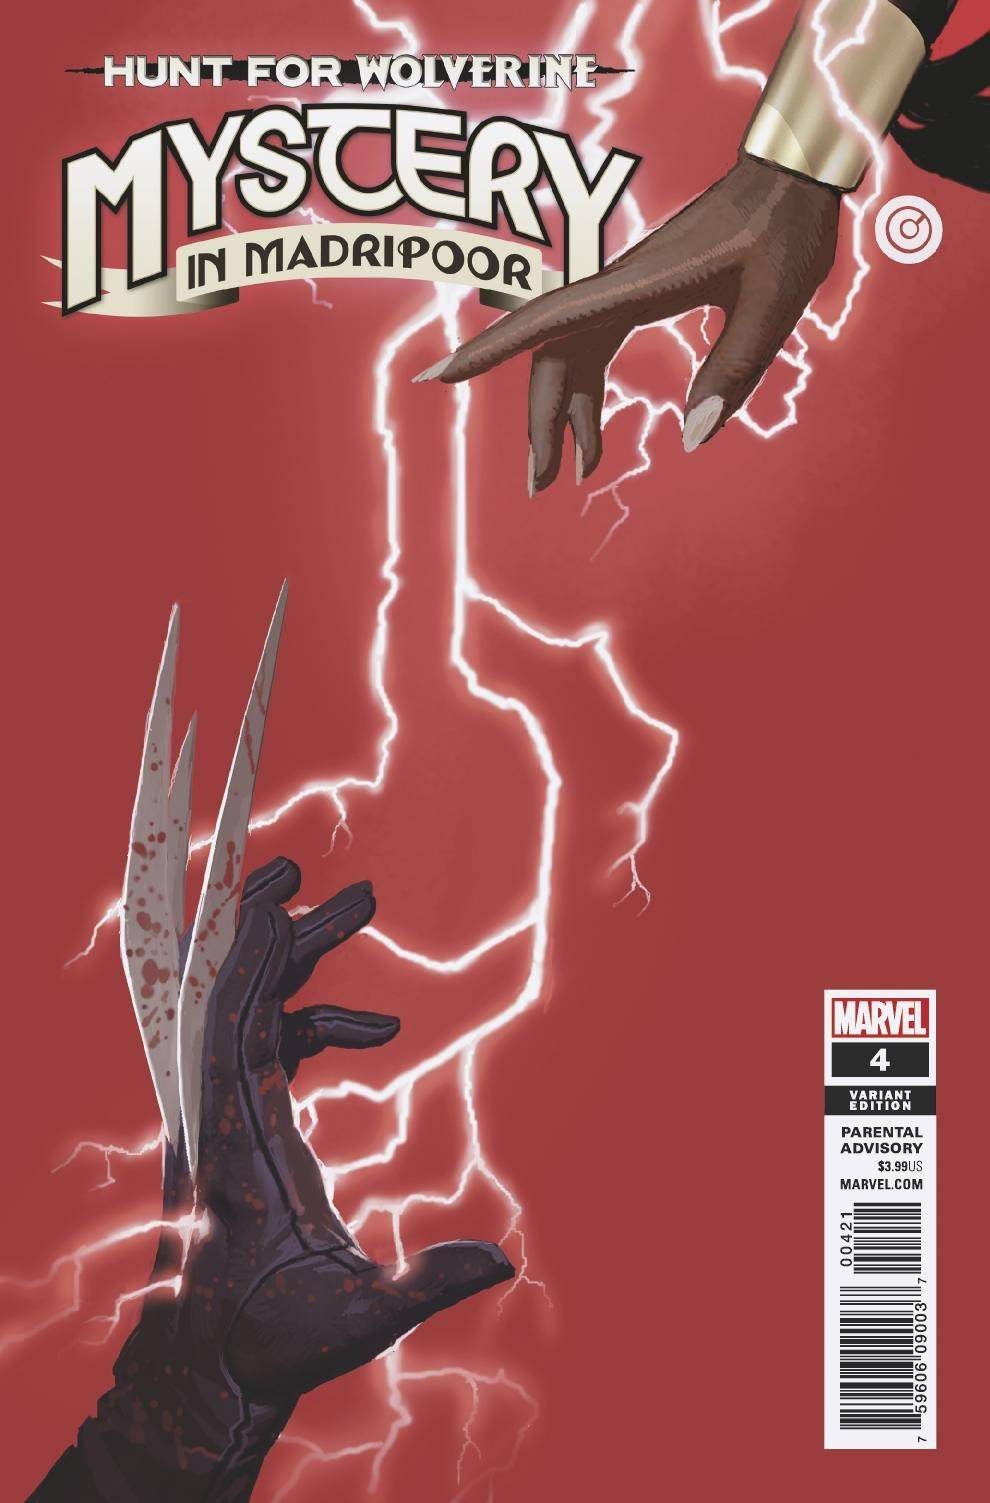 HUNT FOR WOLVERINE MYSTERY MADRIPOOR #4 (OF 4) BACHALO VAR (08/22/2018)